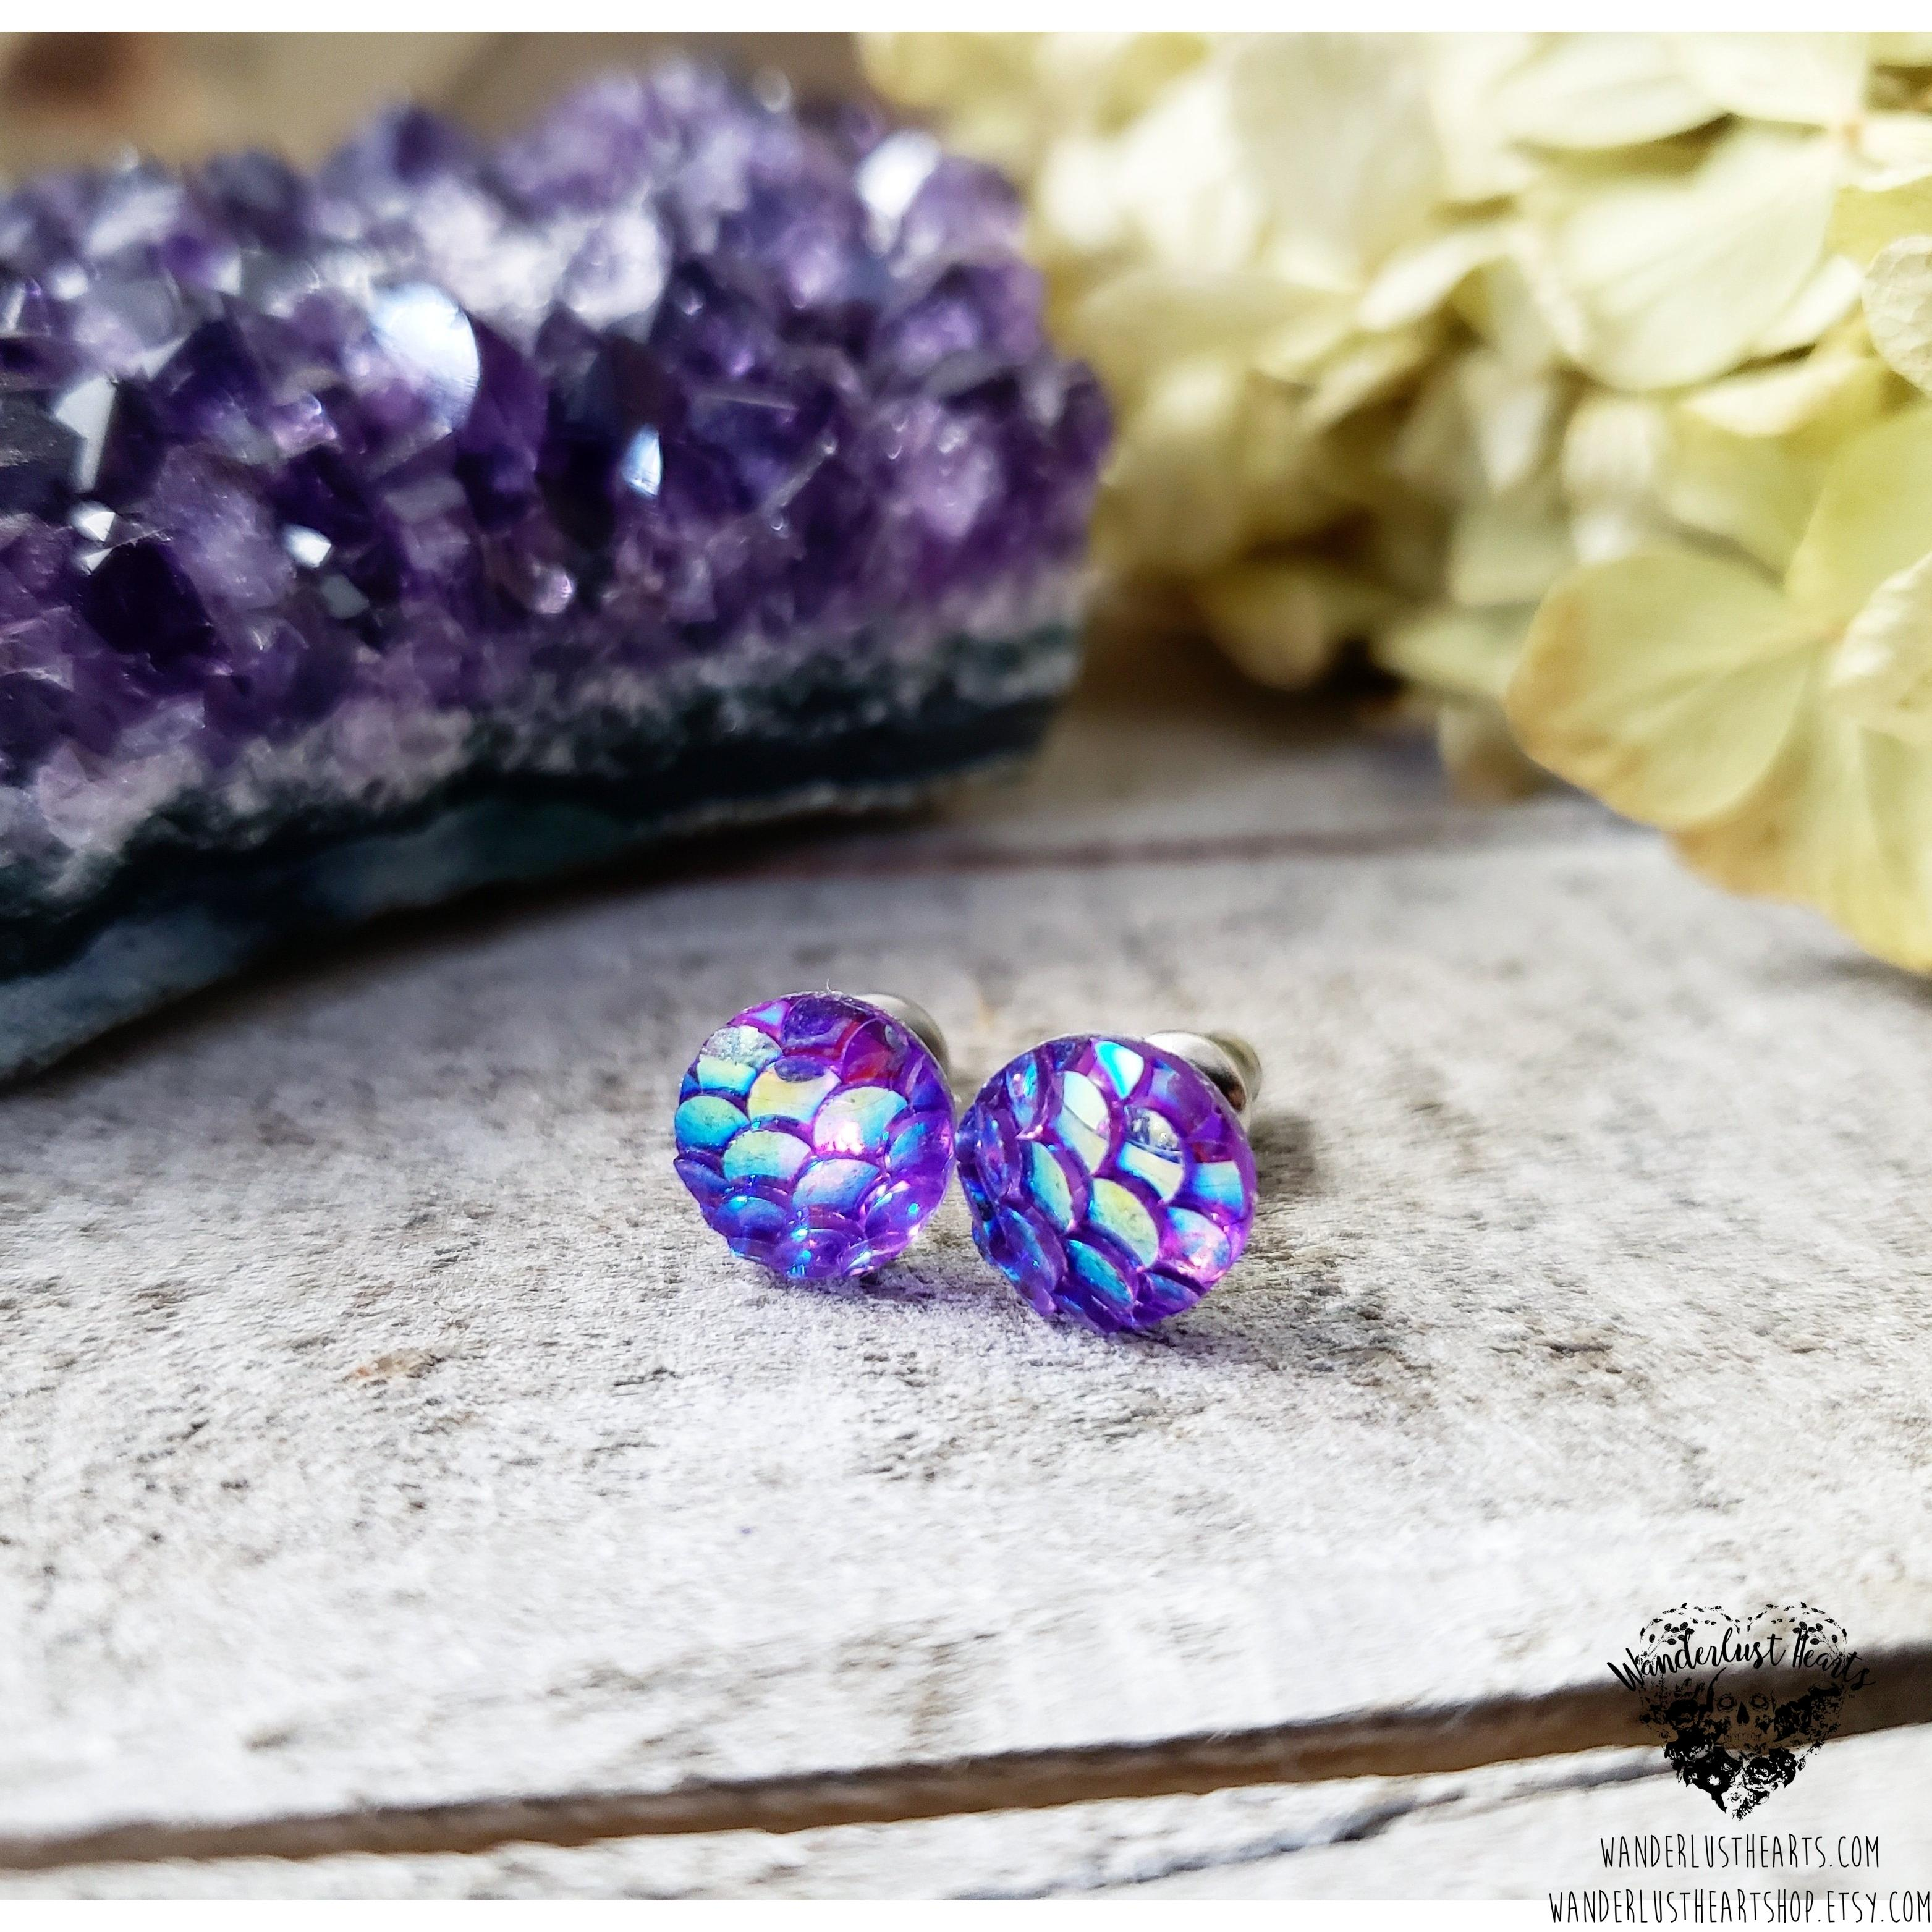 Mermaid scale stud earrings-Wanderlust Hearts